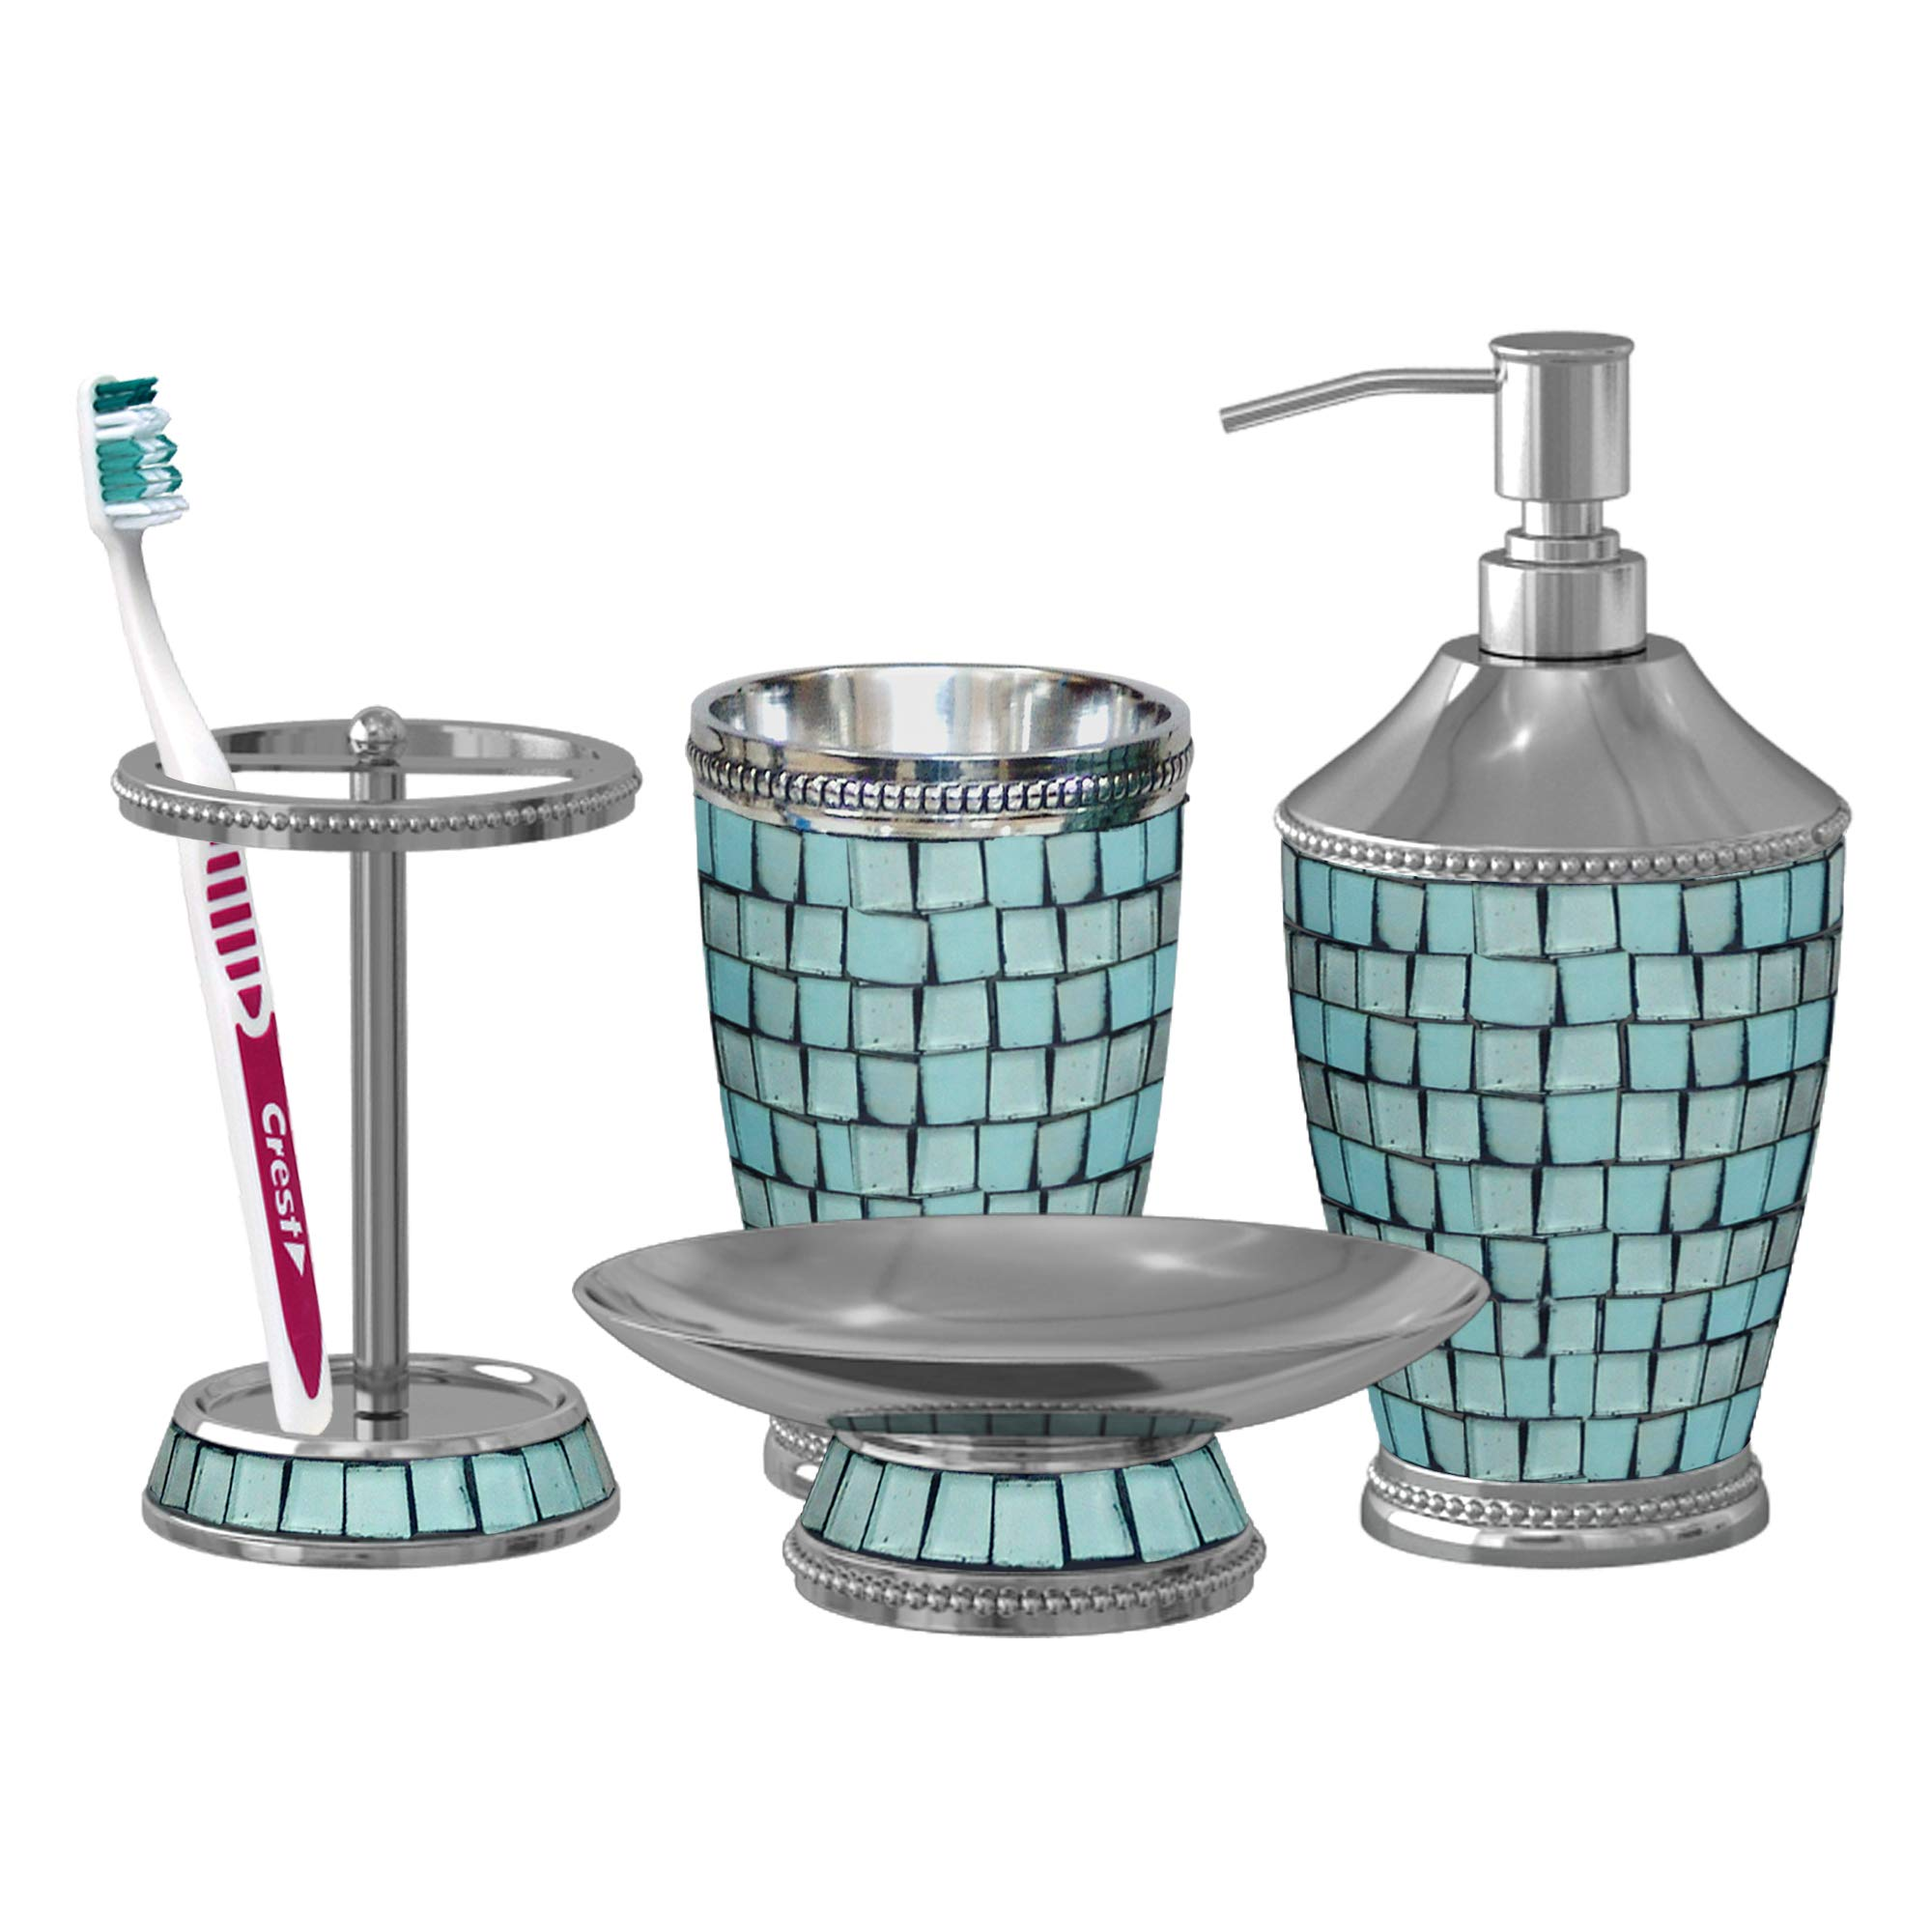 nu steel IBA-3456-SET4 Iceberg Collection Bathroom Accessories Set, Dispenser,Soap Dish, Toothbrush Holder and Tumbler, Aqua Glass Mosaic Finish